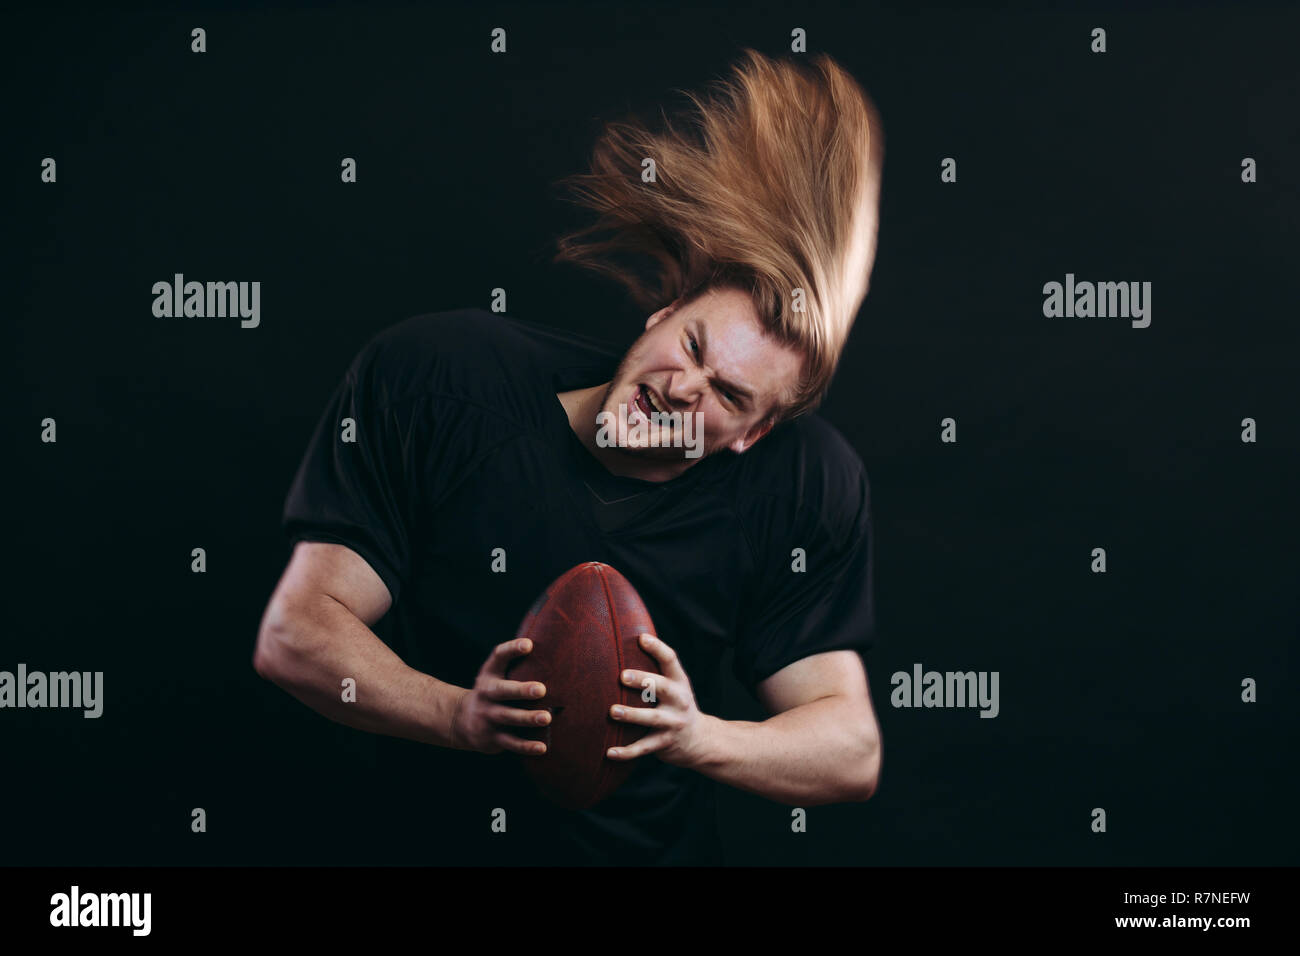 American football player about to throw the ball - Stock Image